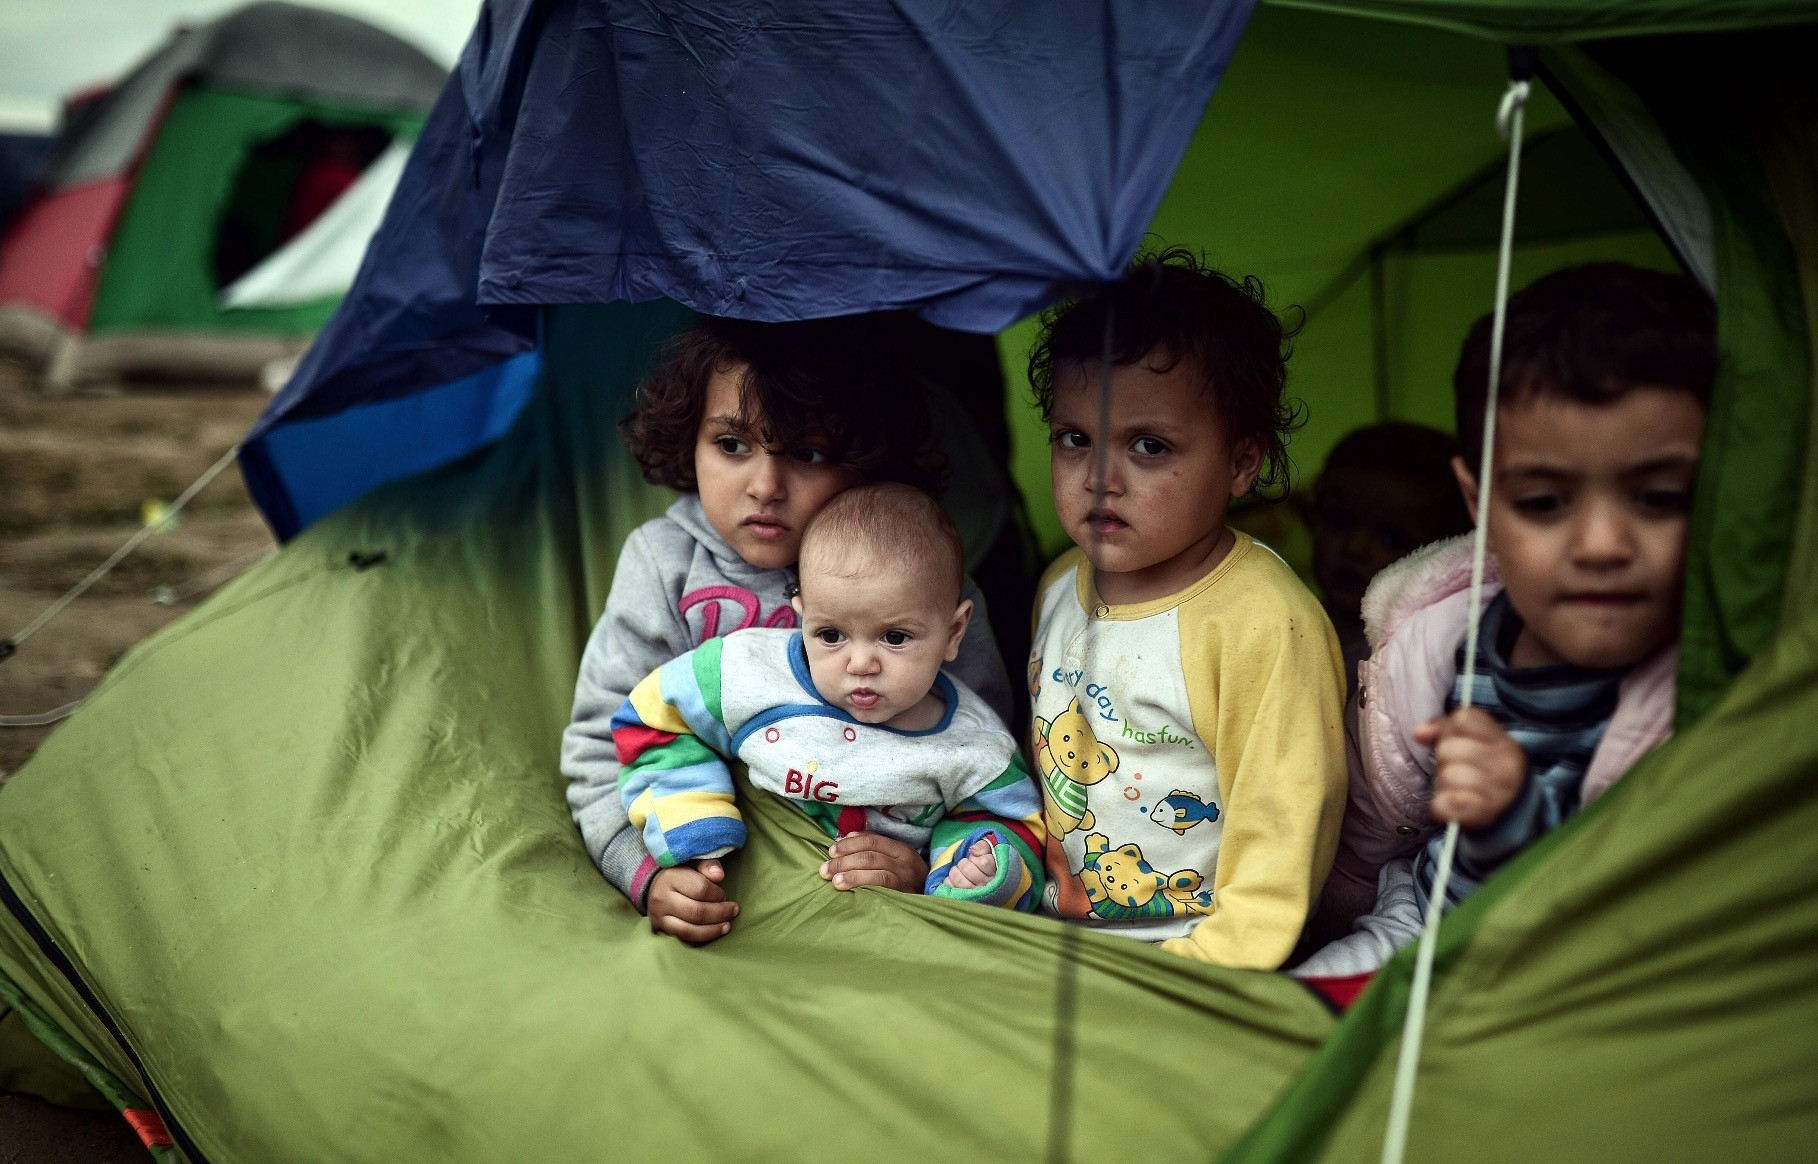 Refugee children sit in a tent in the makeshift camp at the Greek-Macedonian border near Idomeni, March 7, 2016.